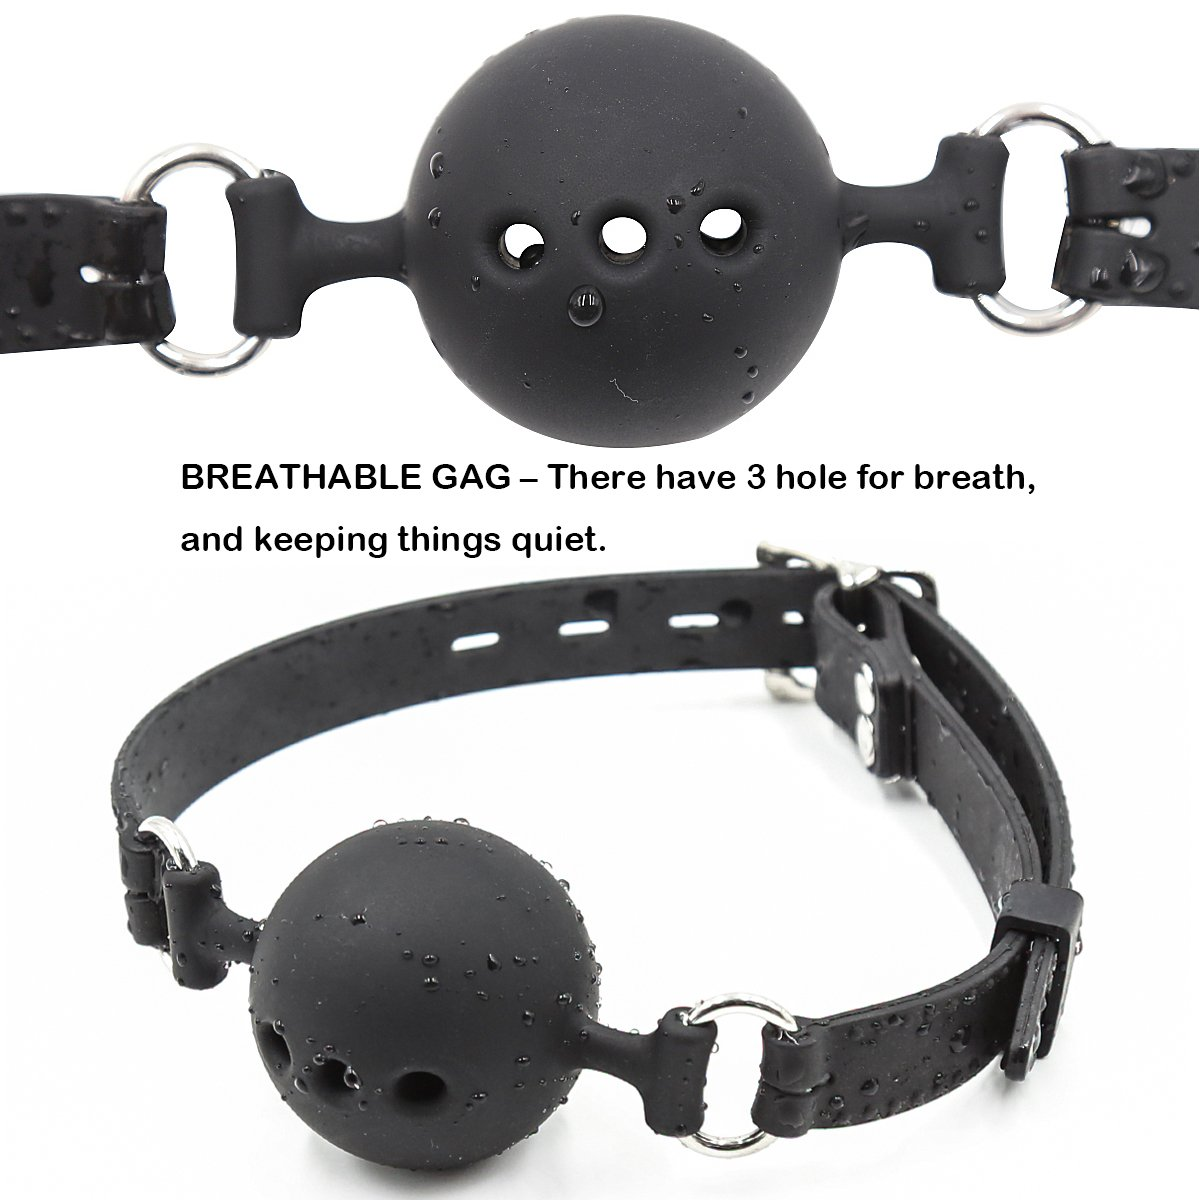 US Faux Leather Breathable Ball Gag Mouth Restraint Harness Bondage Gag S/&M Toys